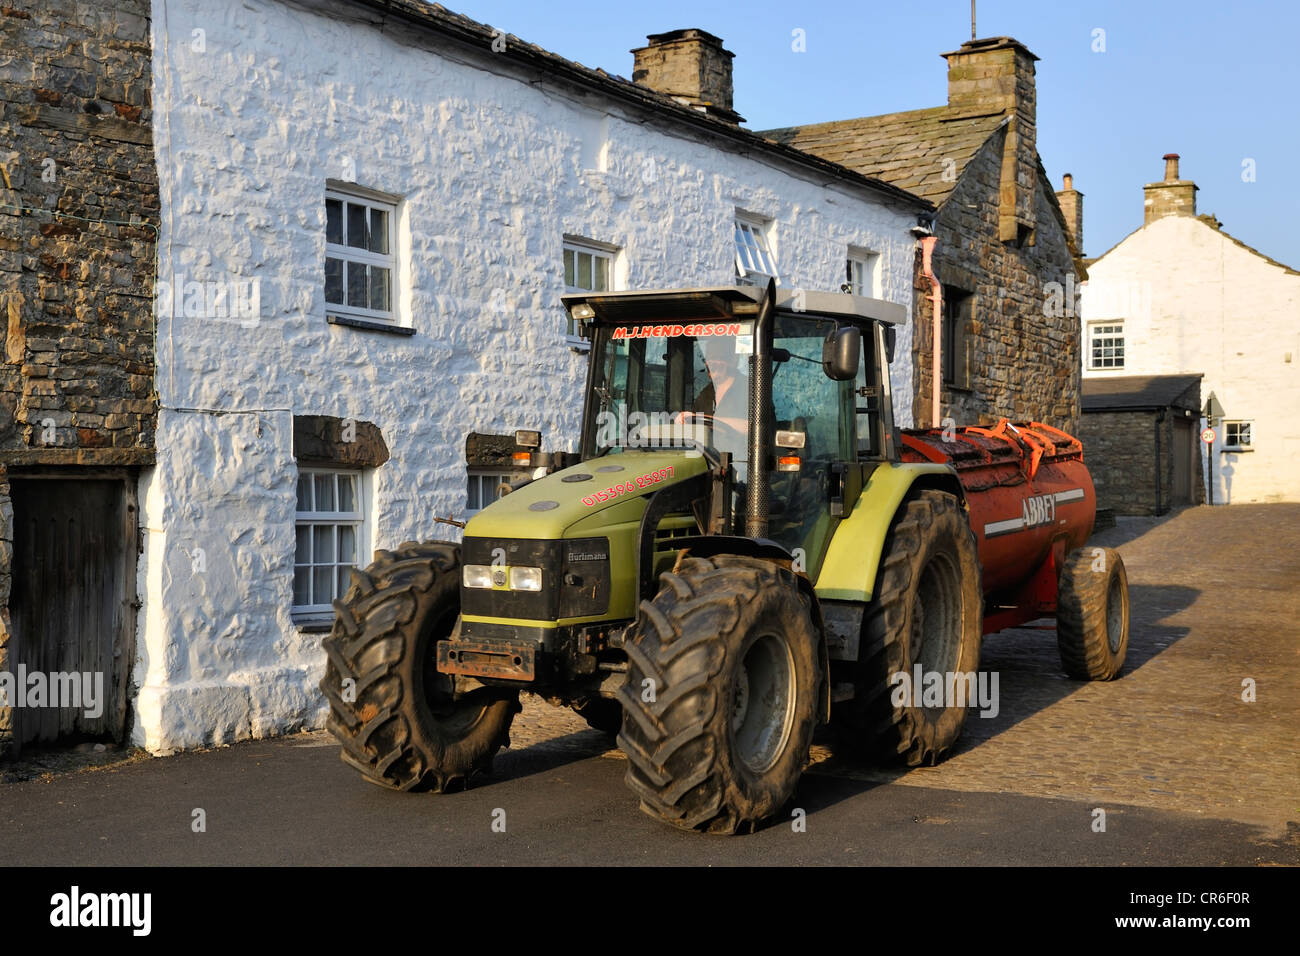 Tractor and muck-spreader on the cobbled main street of Dent, Cumbria, England - Stock Image